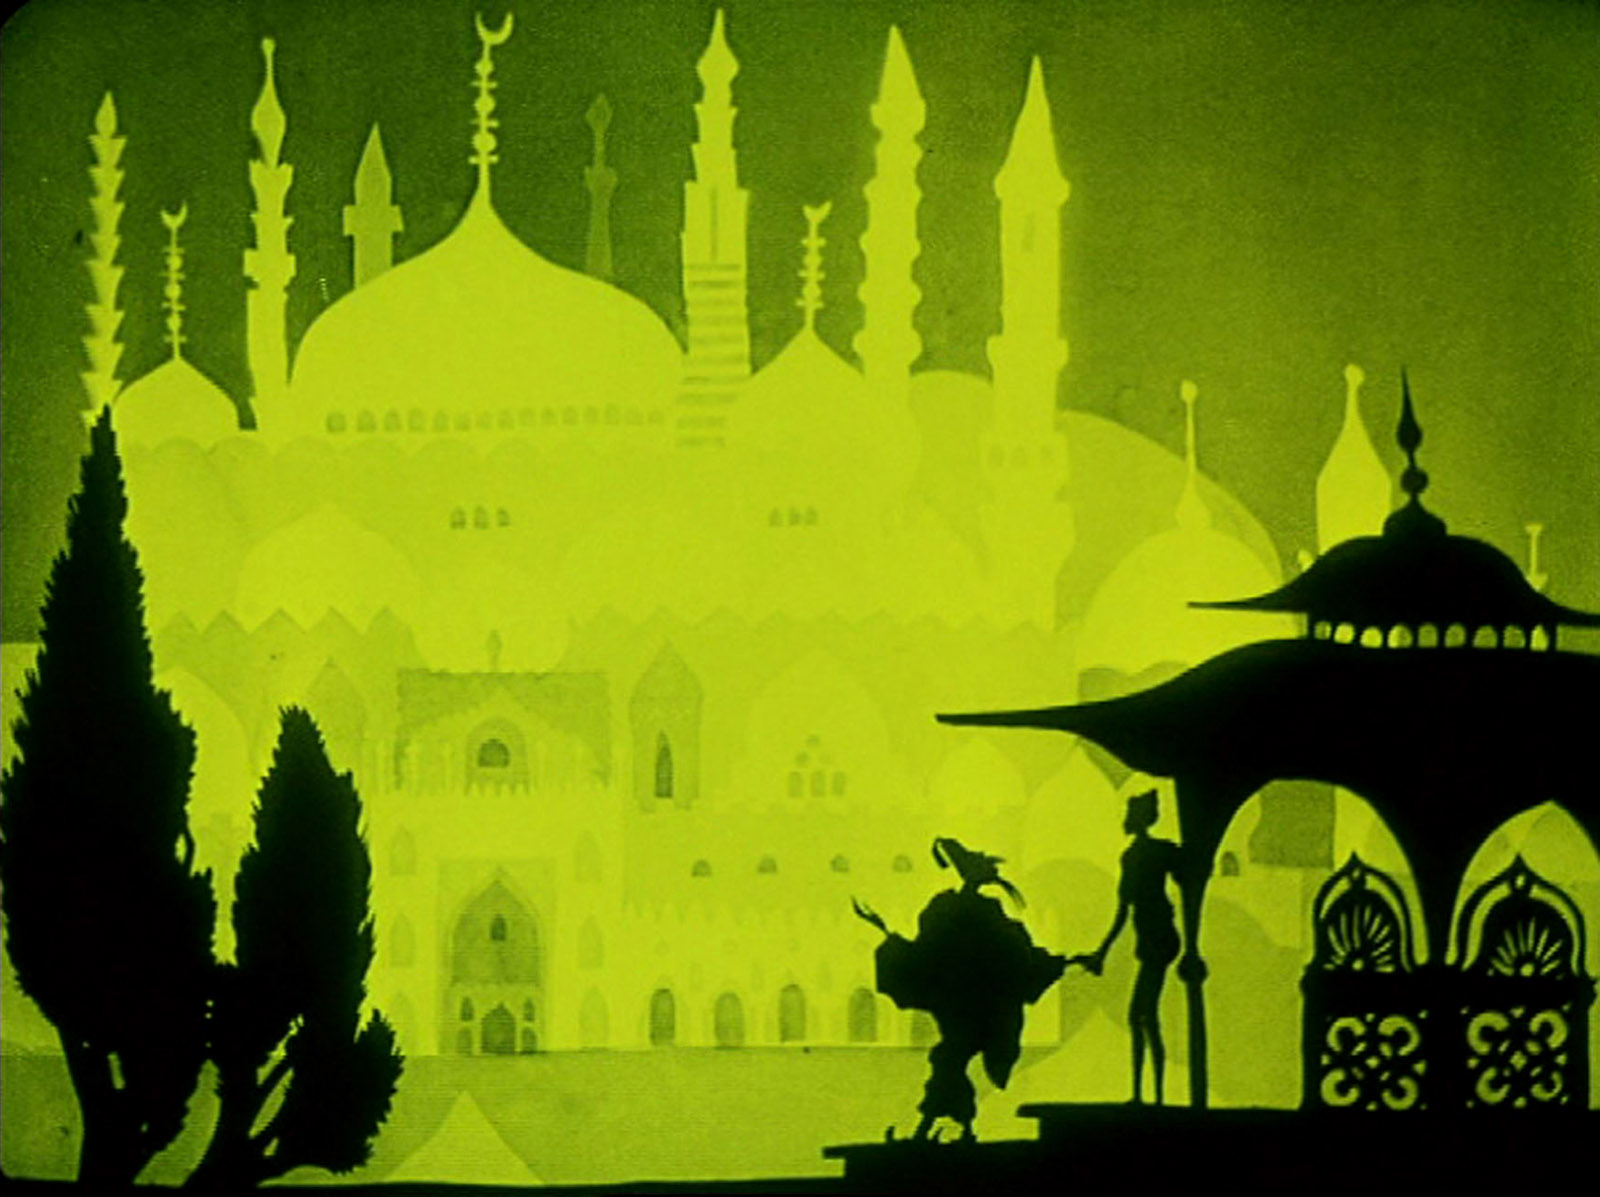 A still from Lotte Reiniger's The Adventures of Prince Achmed